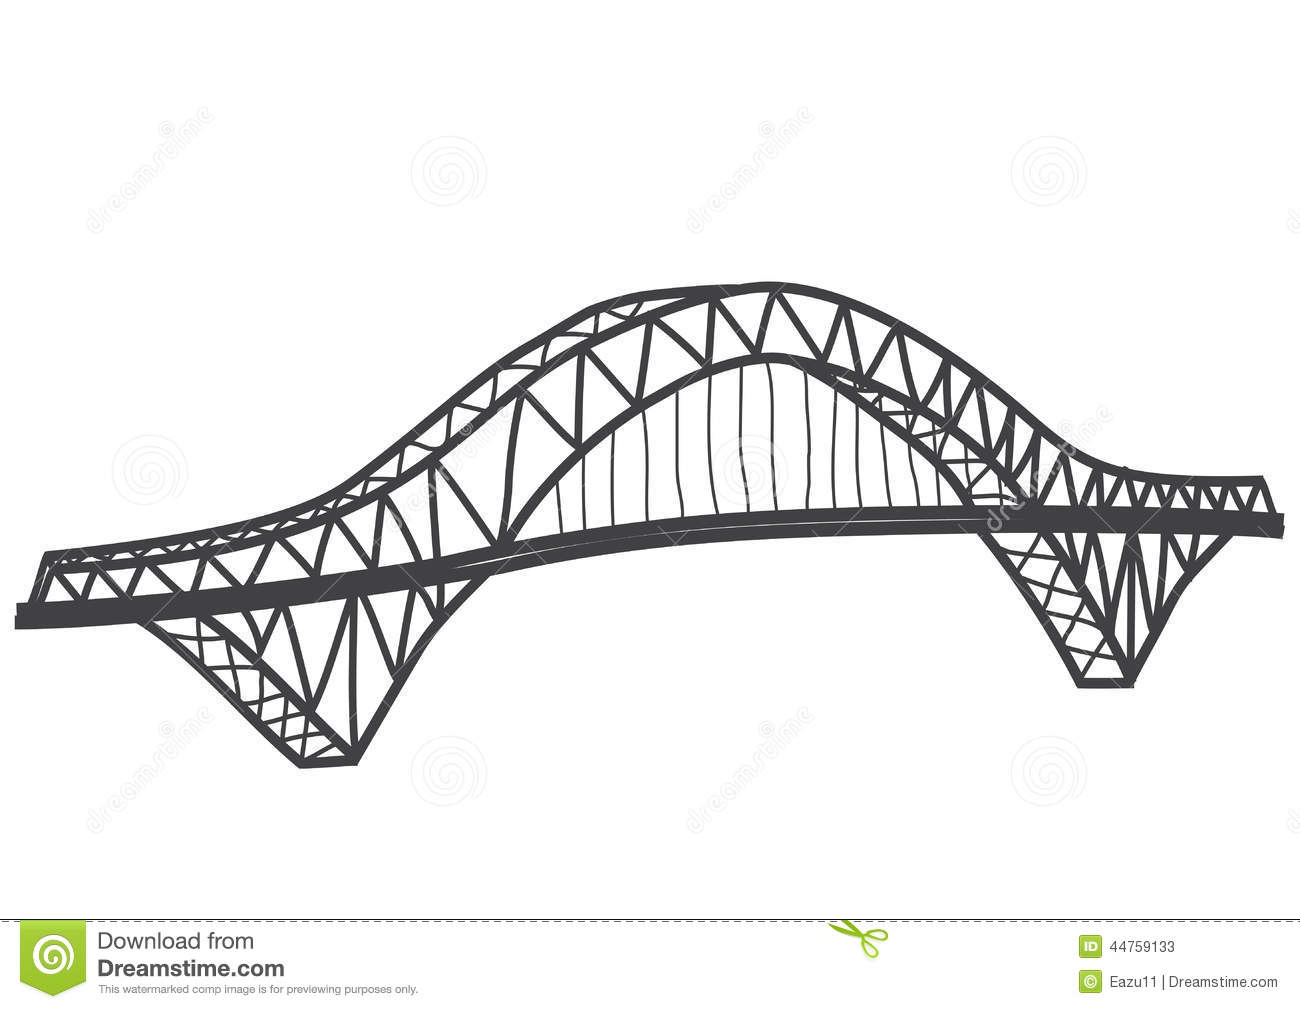 how to draw a bridge in illustrator